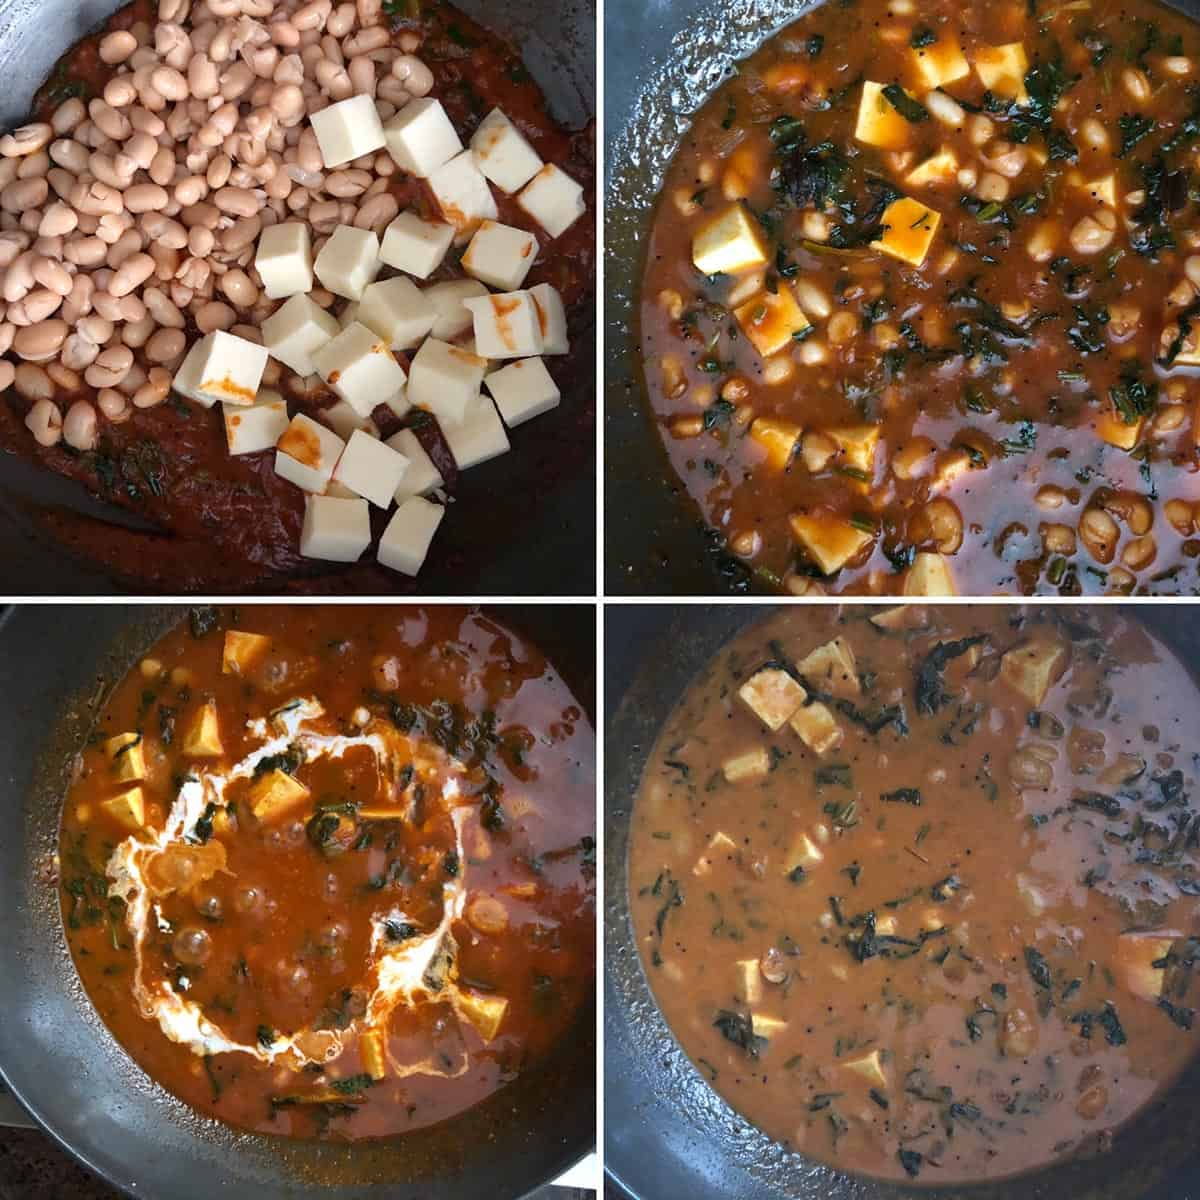 Adding beans, paneer and cream to the curry